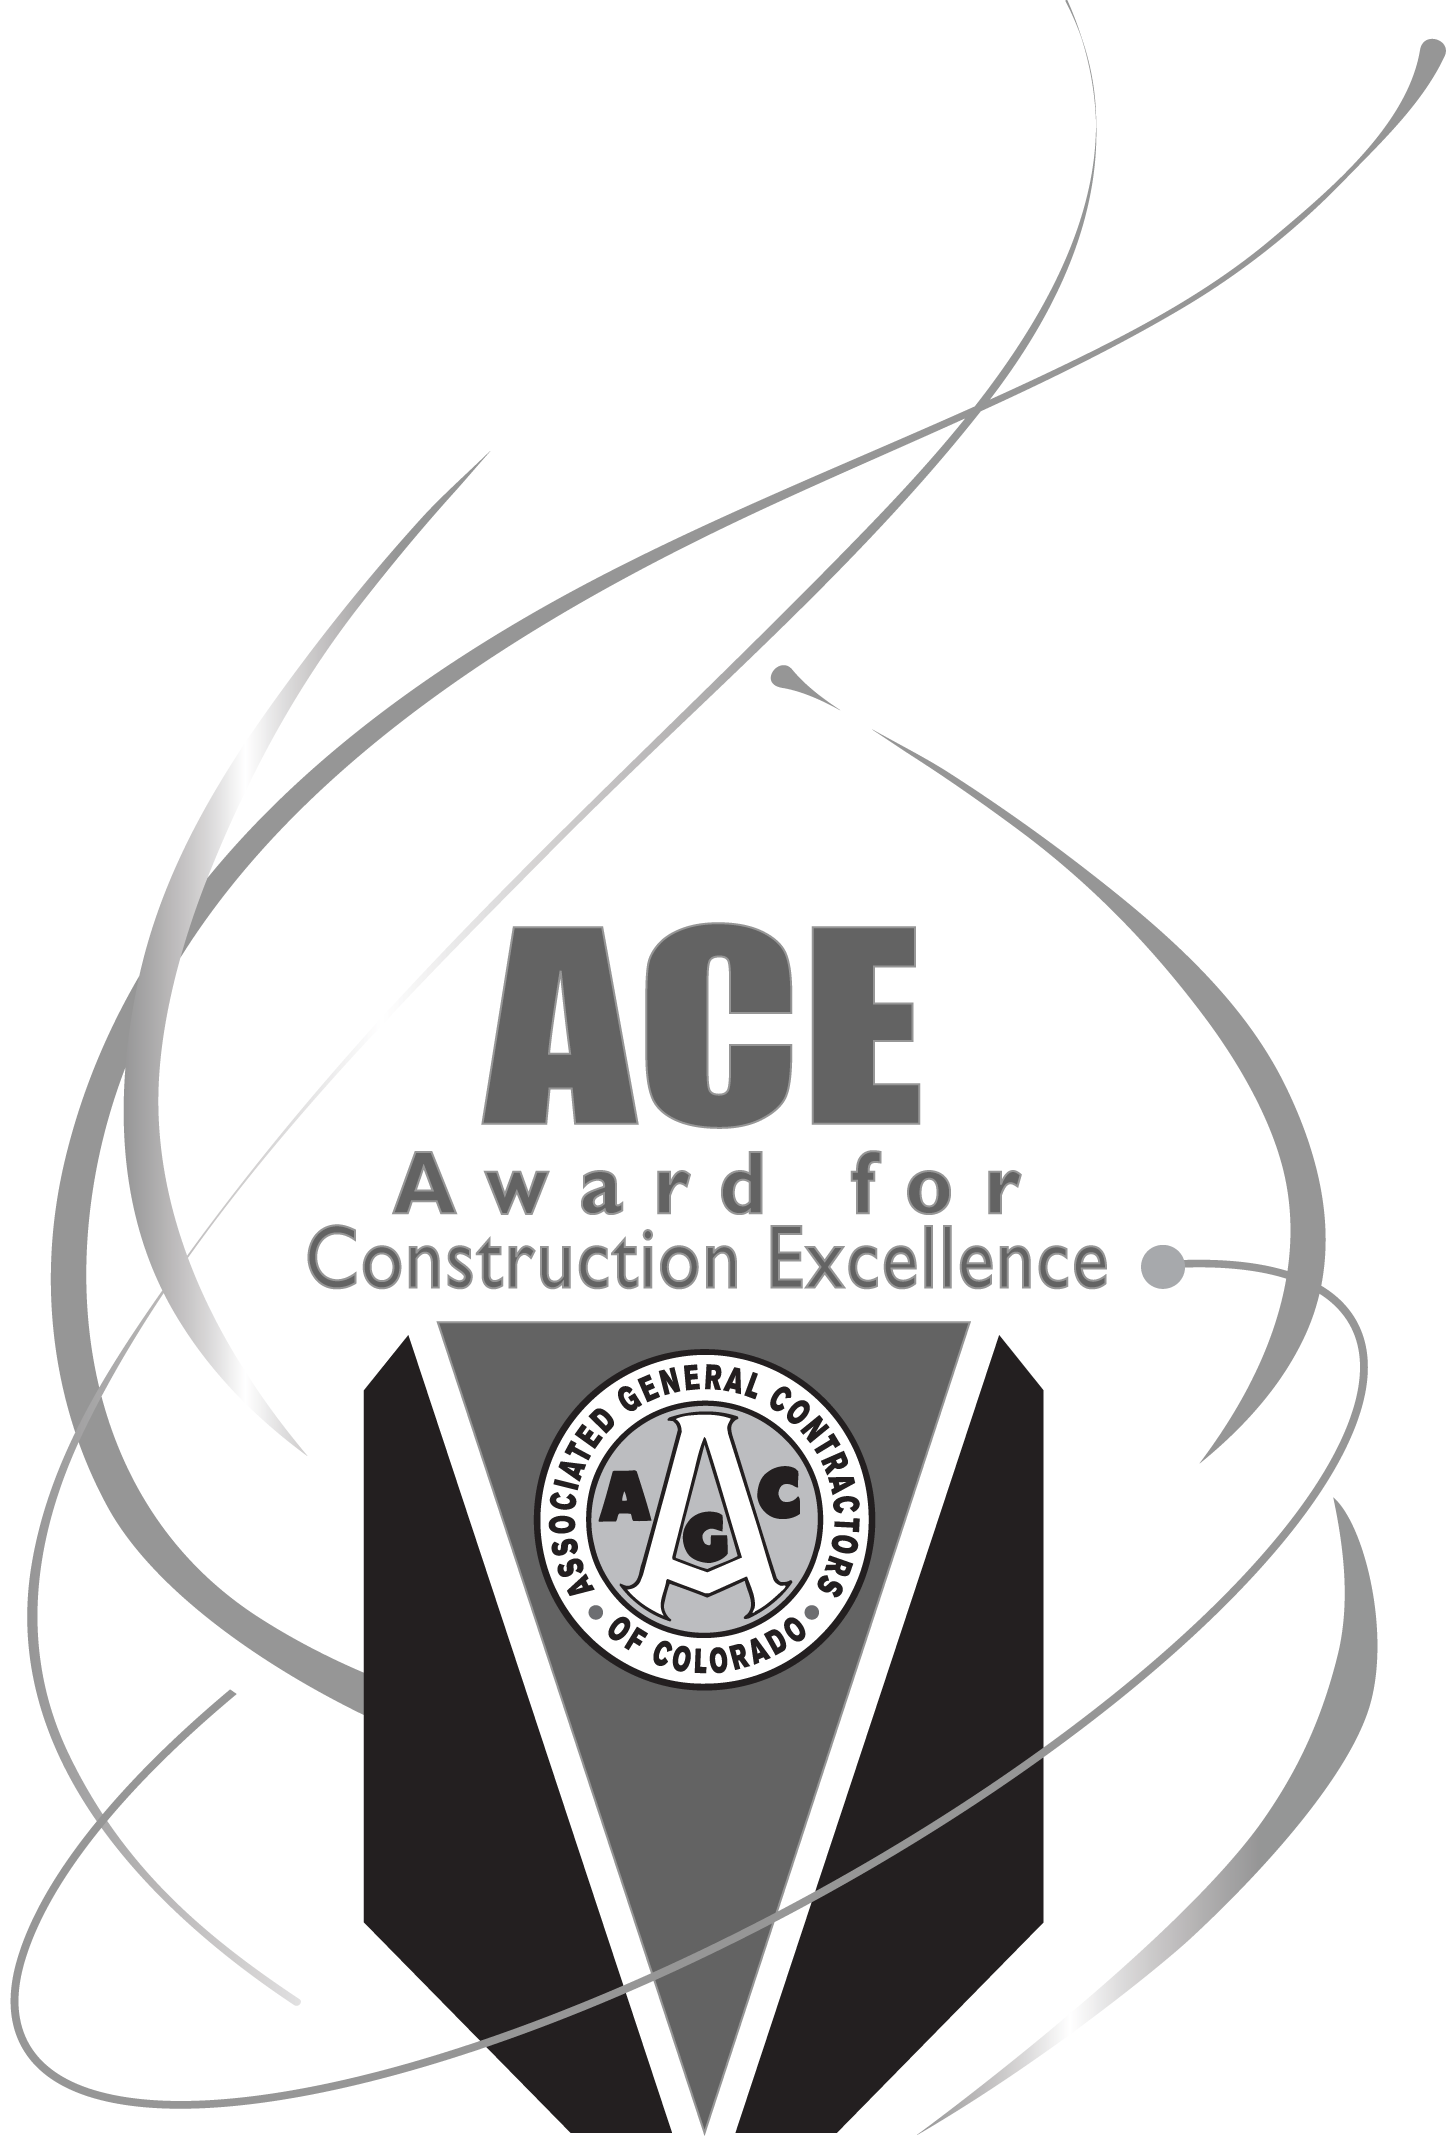 ACE Awards Committee